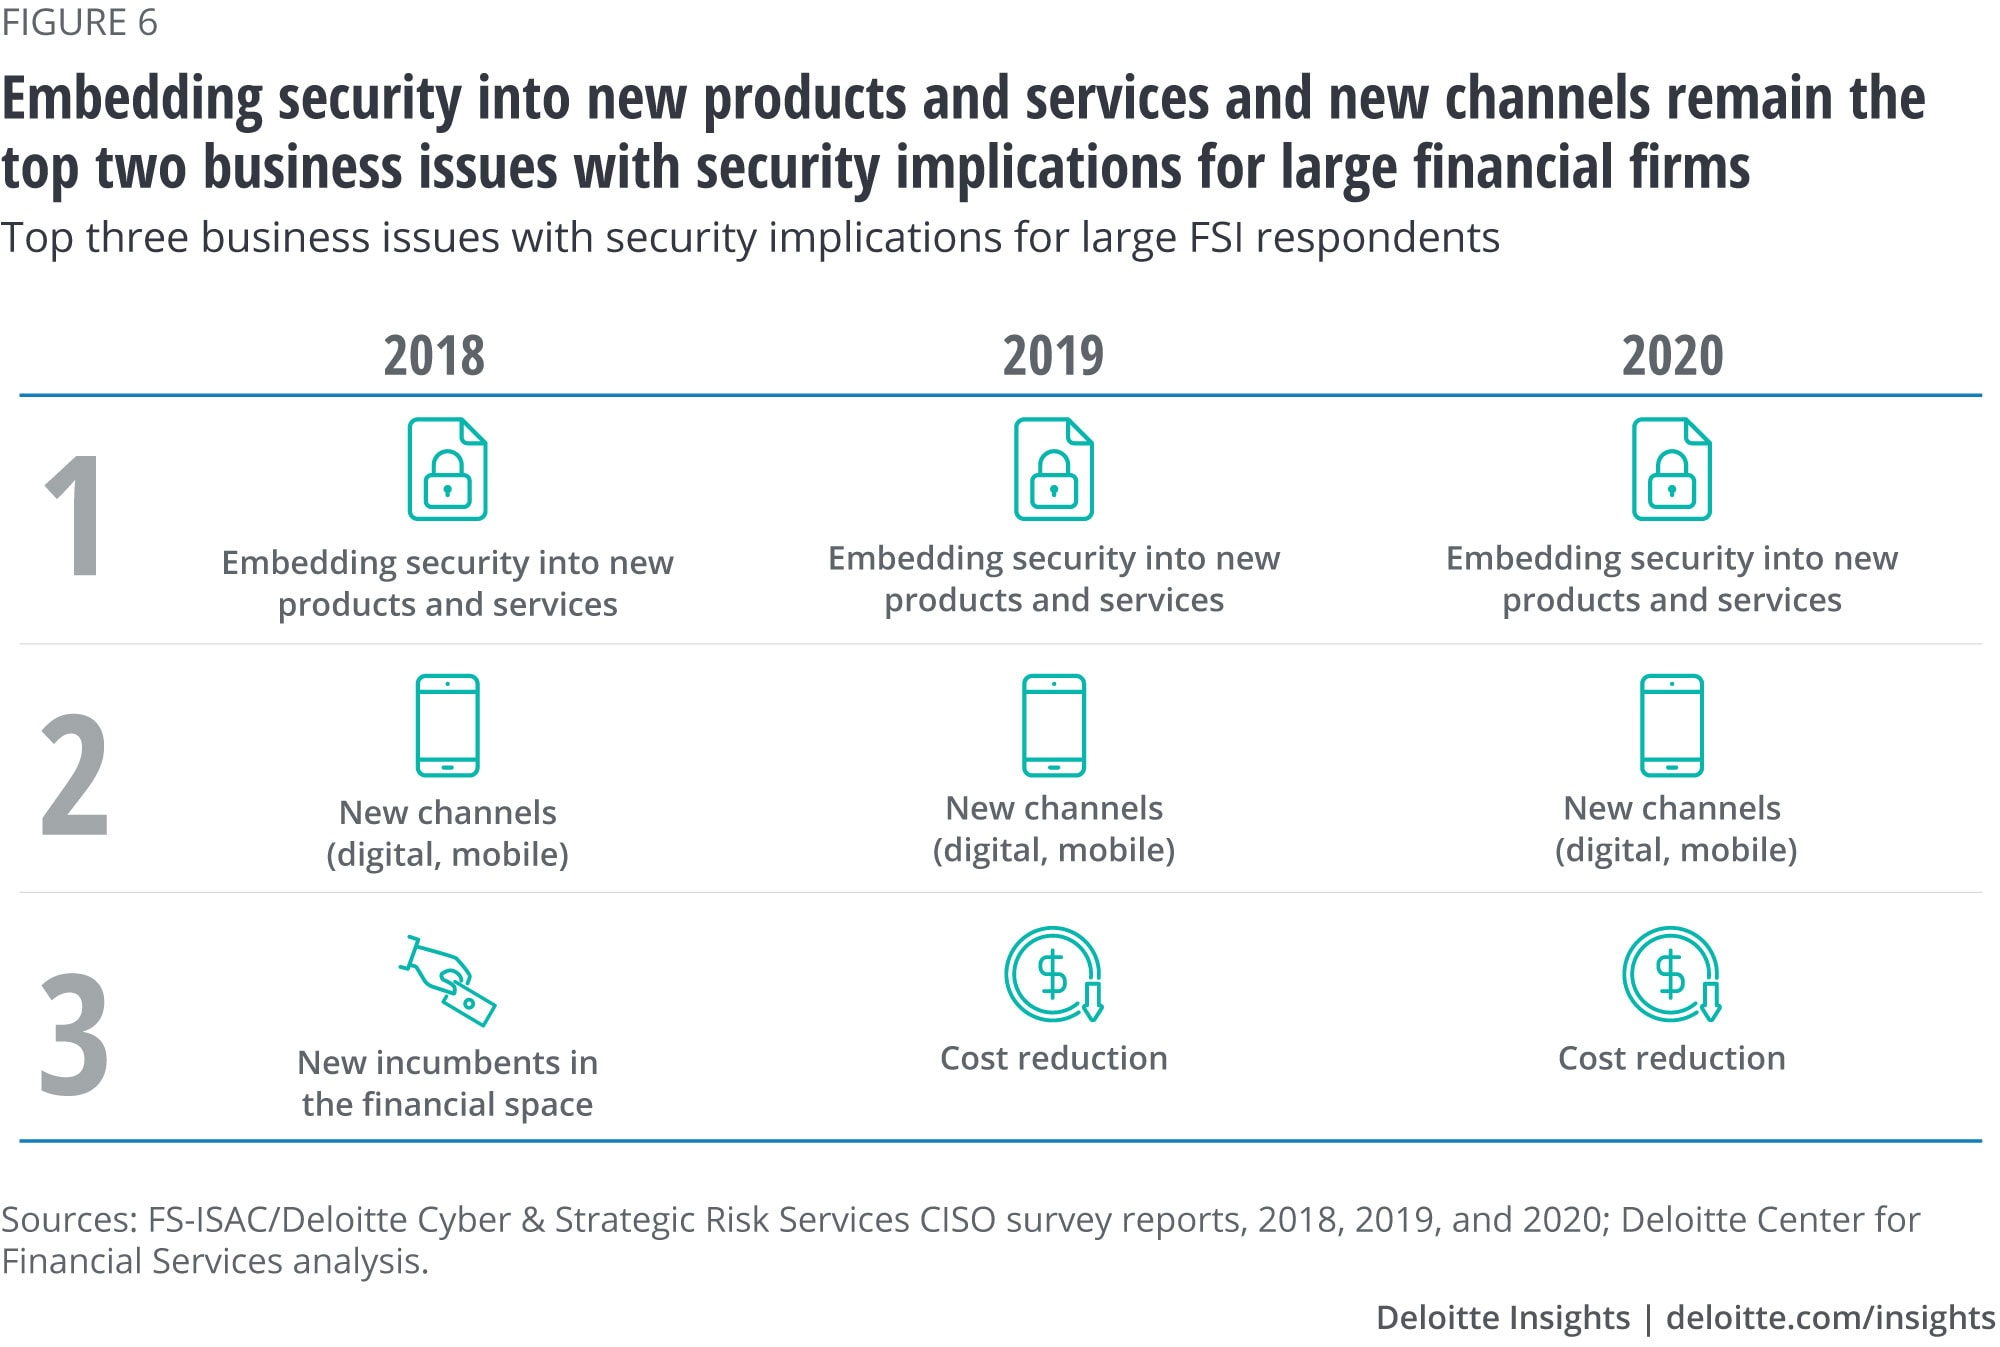 Embedding security into new products and services and new channels remain top two business issues with security implications for large FSIs